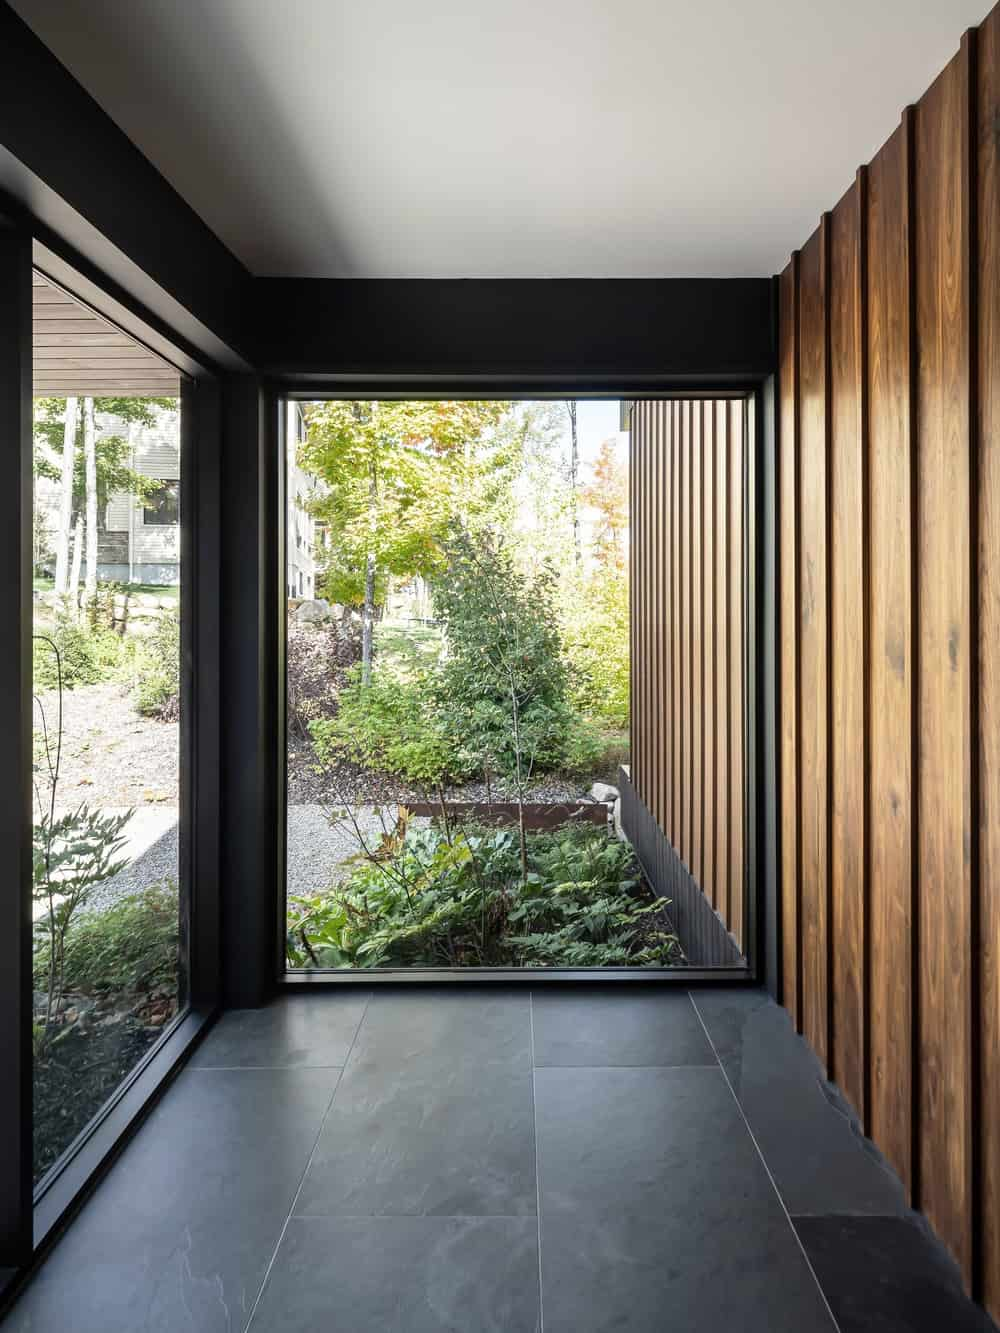 This is a close look at the glass walls of the side of the house that has a clear view of the plants outside in the landscape.